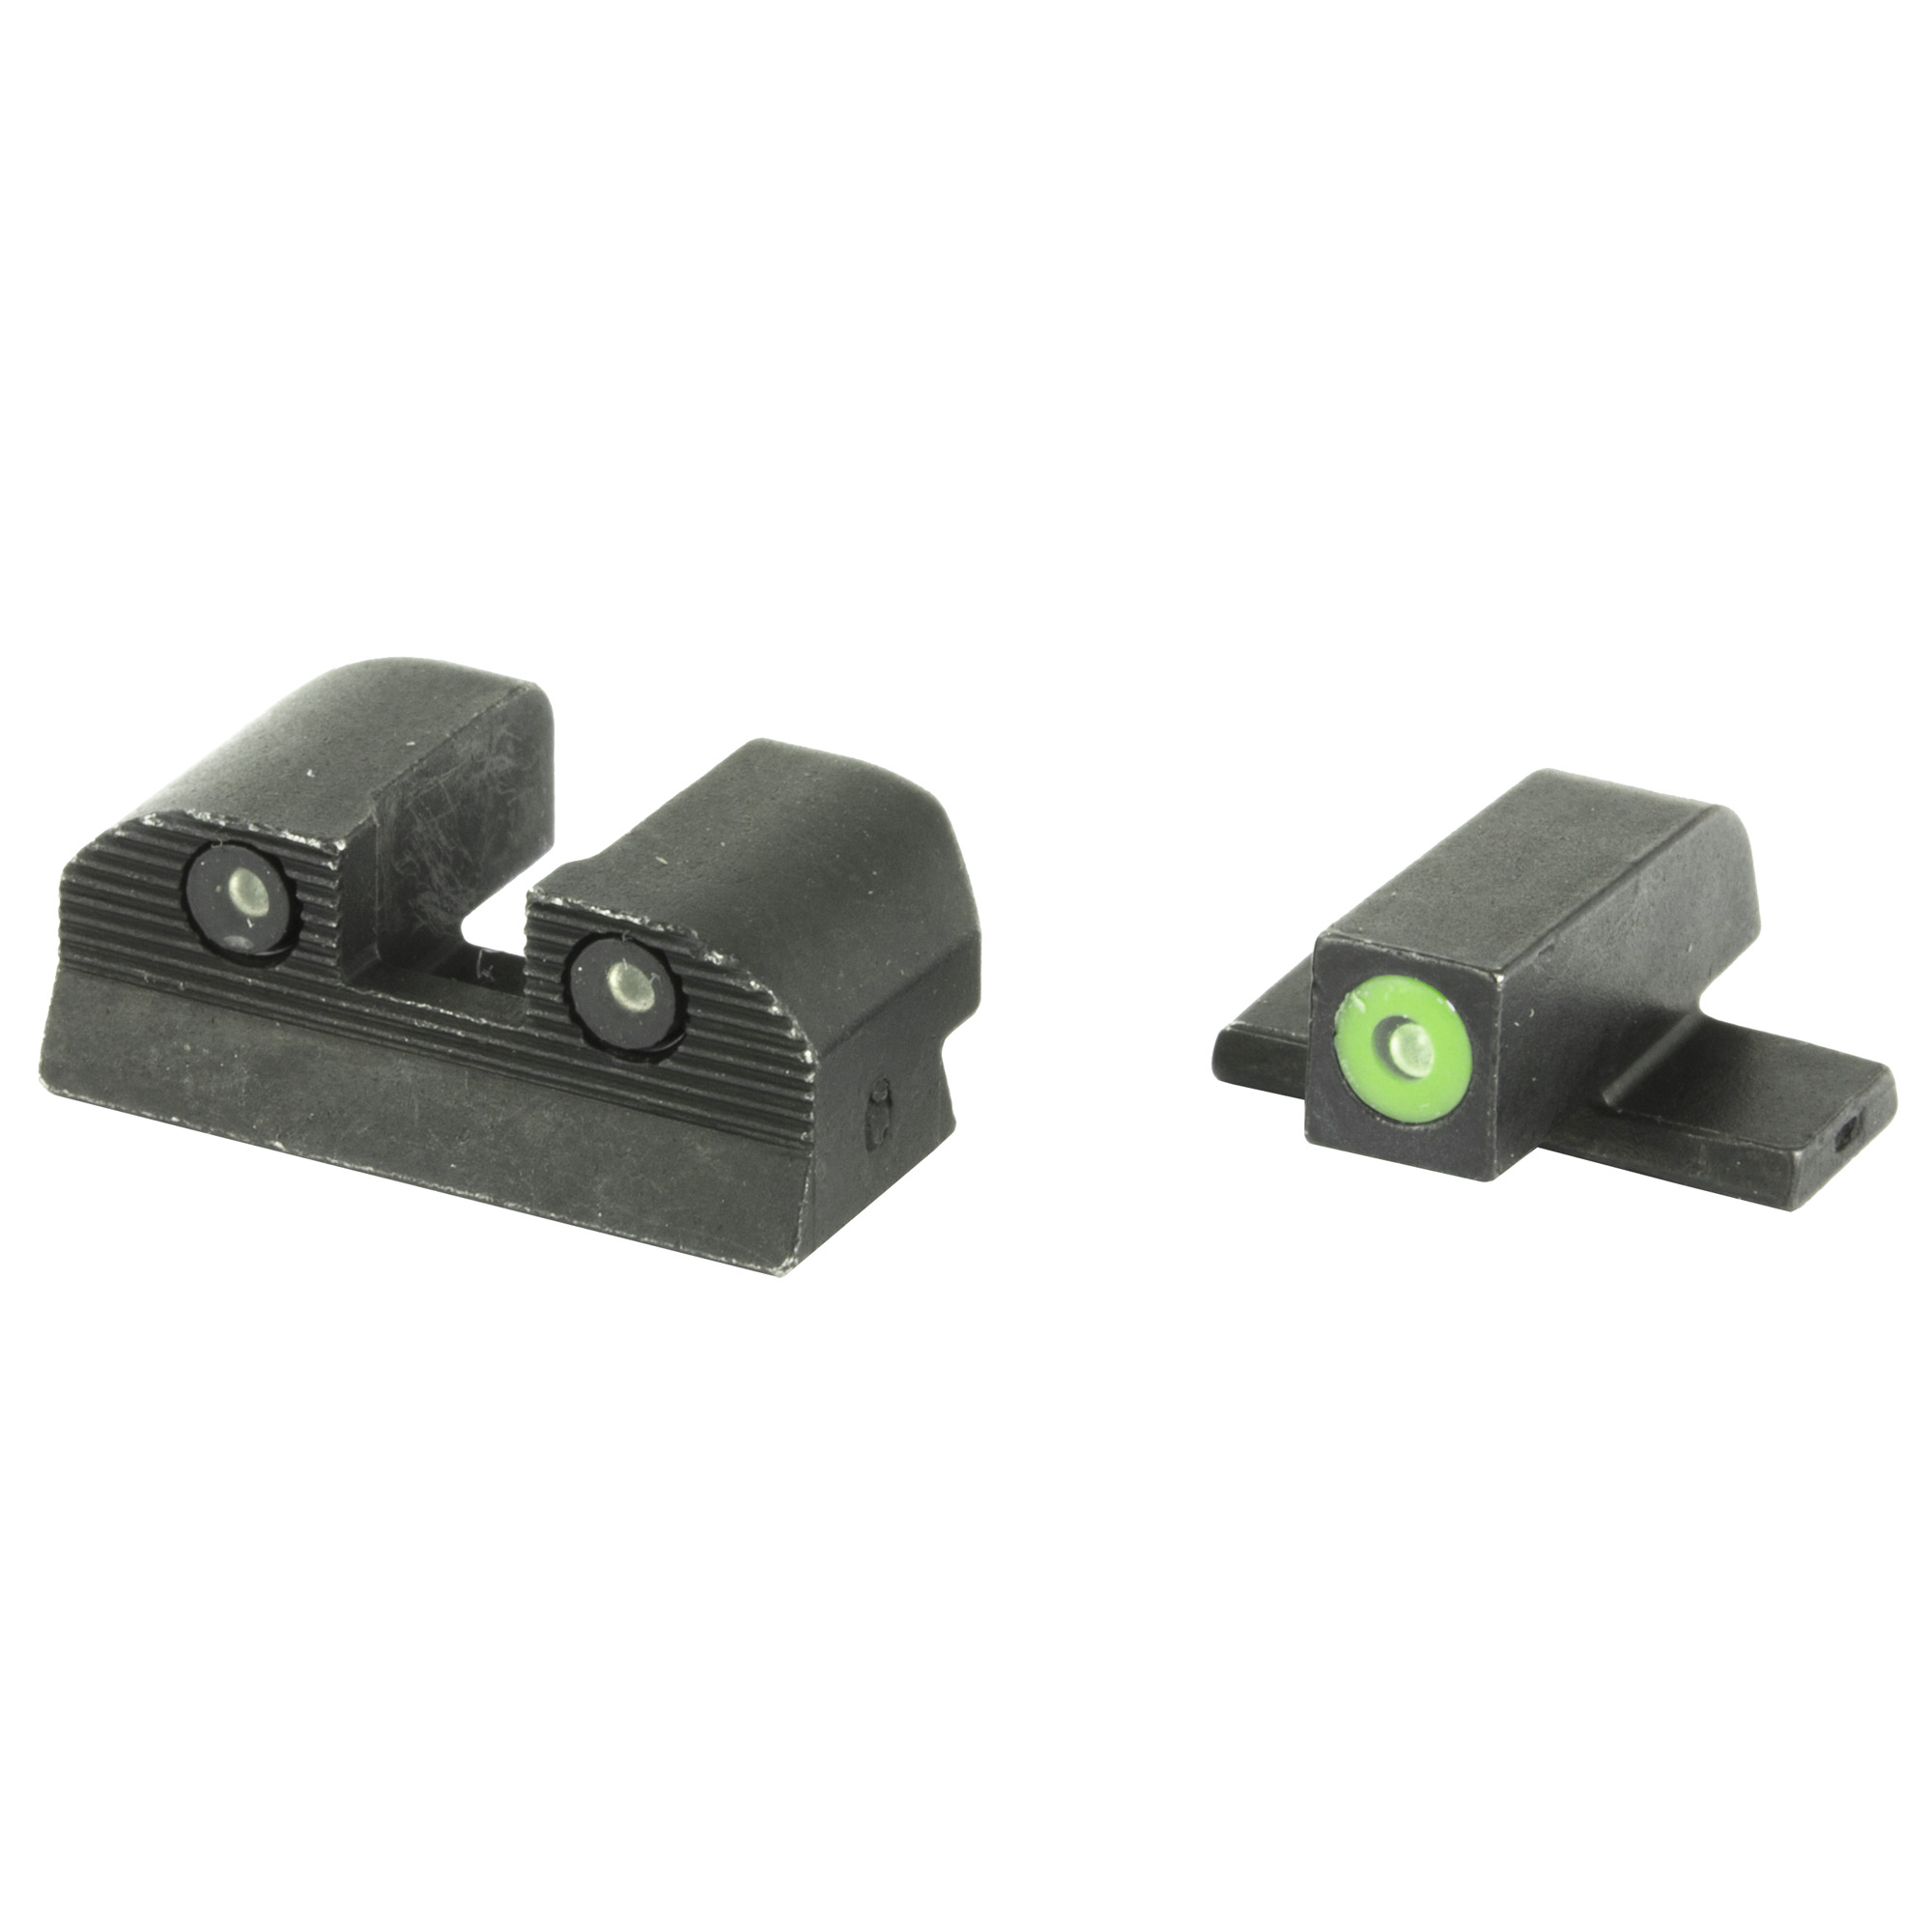 "Compare the X-RAY3 to other conventional sights and you will see the blacked-out rear sight and the high contrast front sight of the X-RAY3"" make target acquisition intuitive and fast and in any light condition. This 3-Dot tritium system has a superior glowing illumination in low-light and remains bright and white for daylight conditions. No more changing sights from night to day patrols"" keeping your sights consistent for all your work or hunting light conditions. The steel surrounds the tritium sights and gives them protection from recoil and protects from cleaning solvents and the harsh elements. Whether you carry for work or for sport"" these X-RAY3 tritium sights will be bright for over a decade and the tested design of the X-RAY3 will stay at max performance."